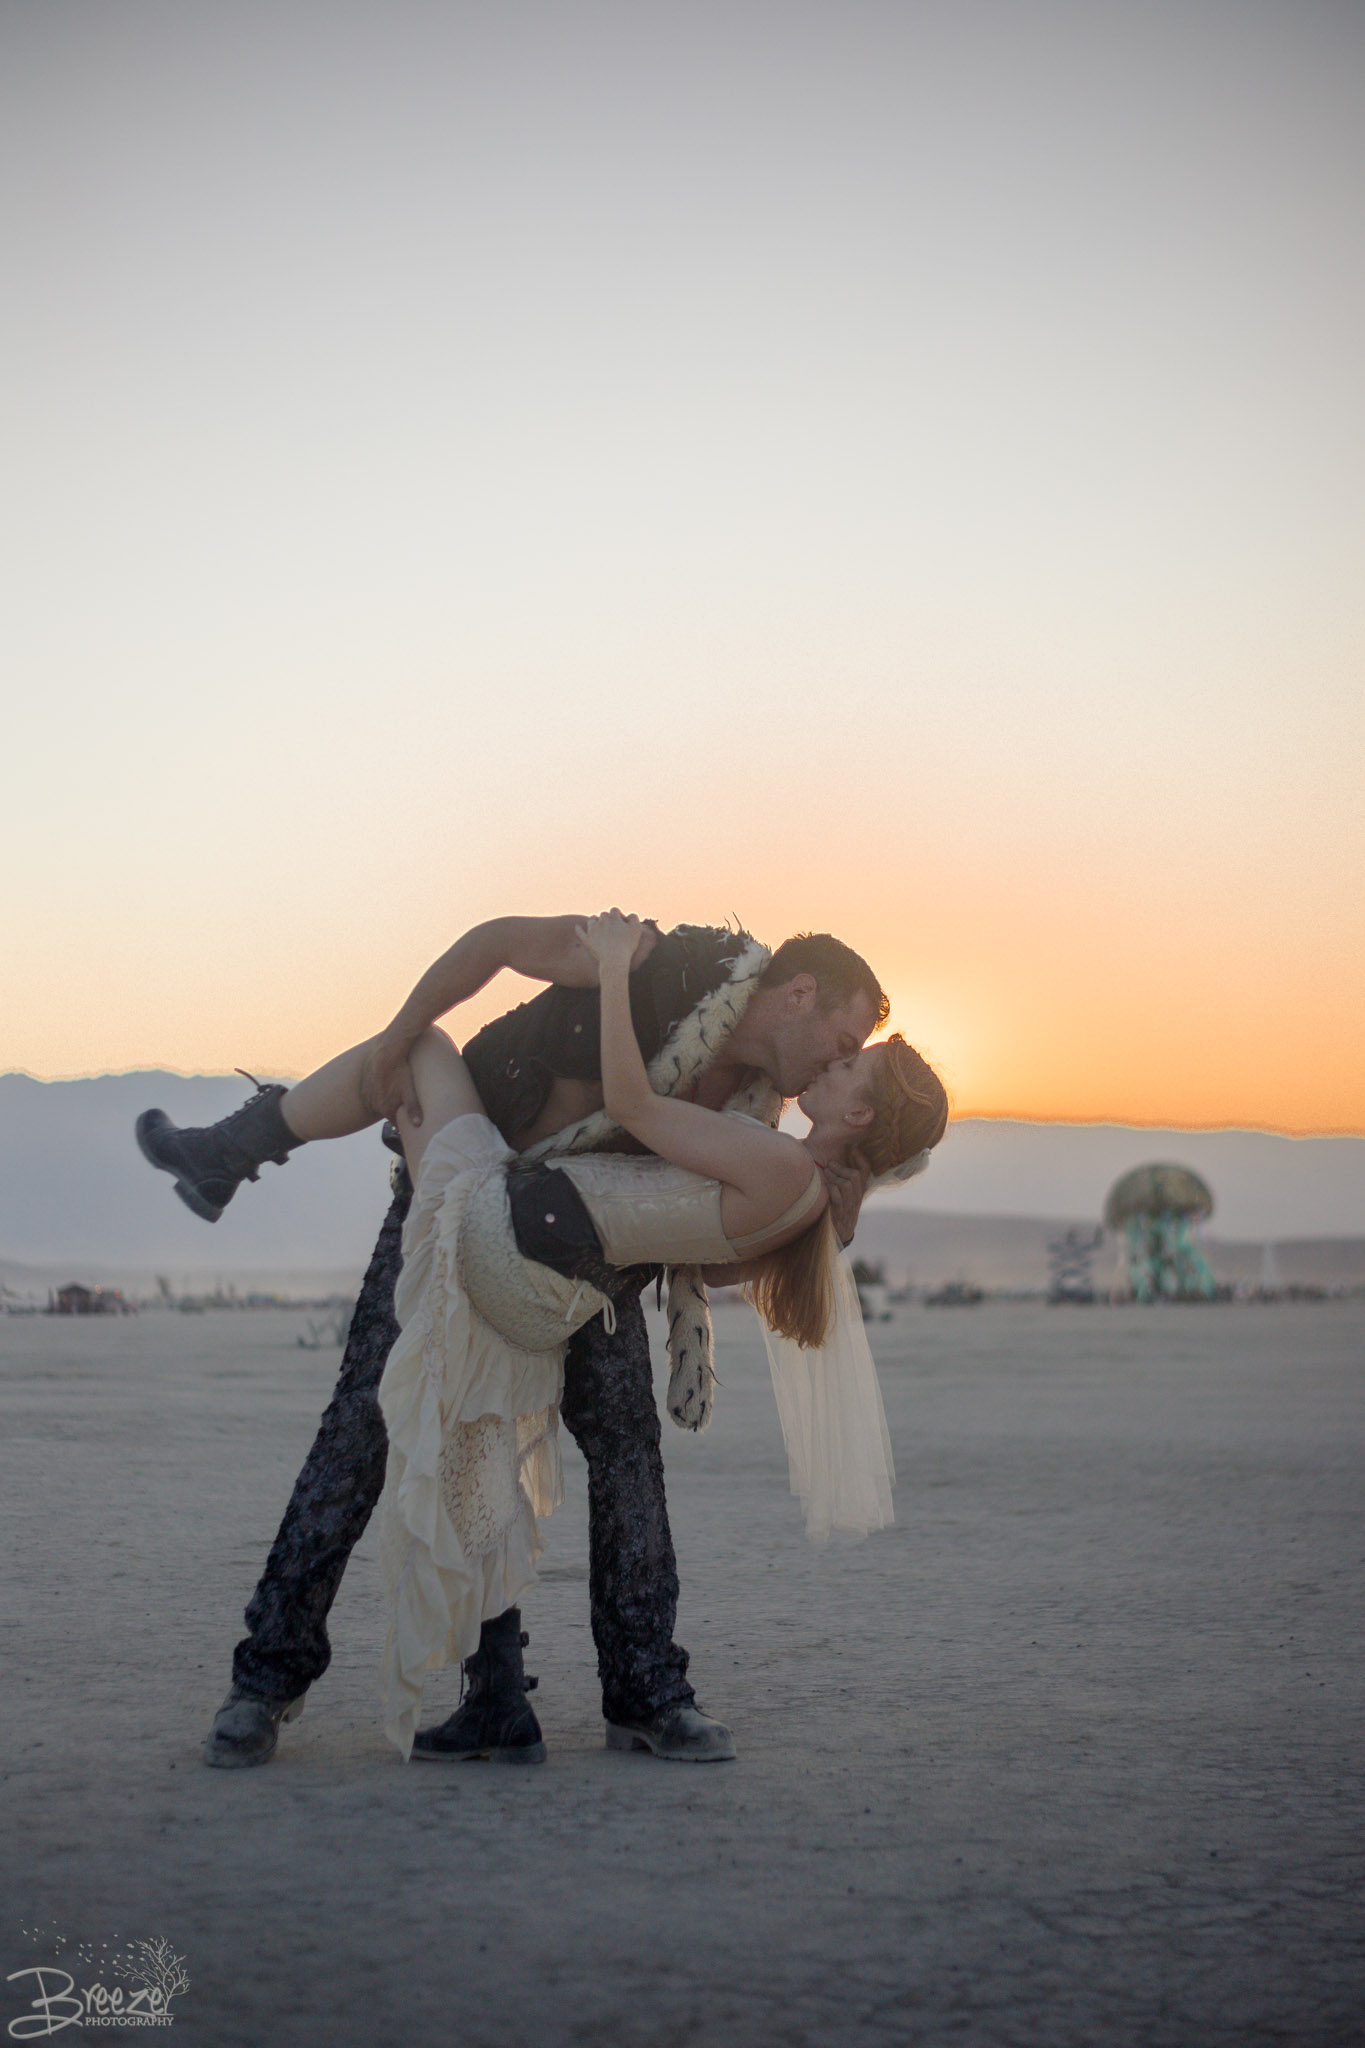 Brie'Ana Breeze Photography & Media - Burning Man 2018-3552.jpg